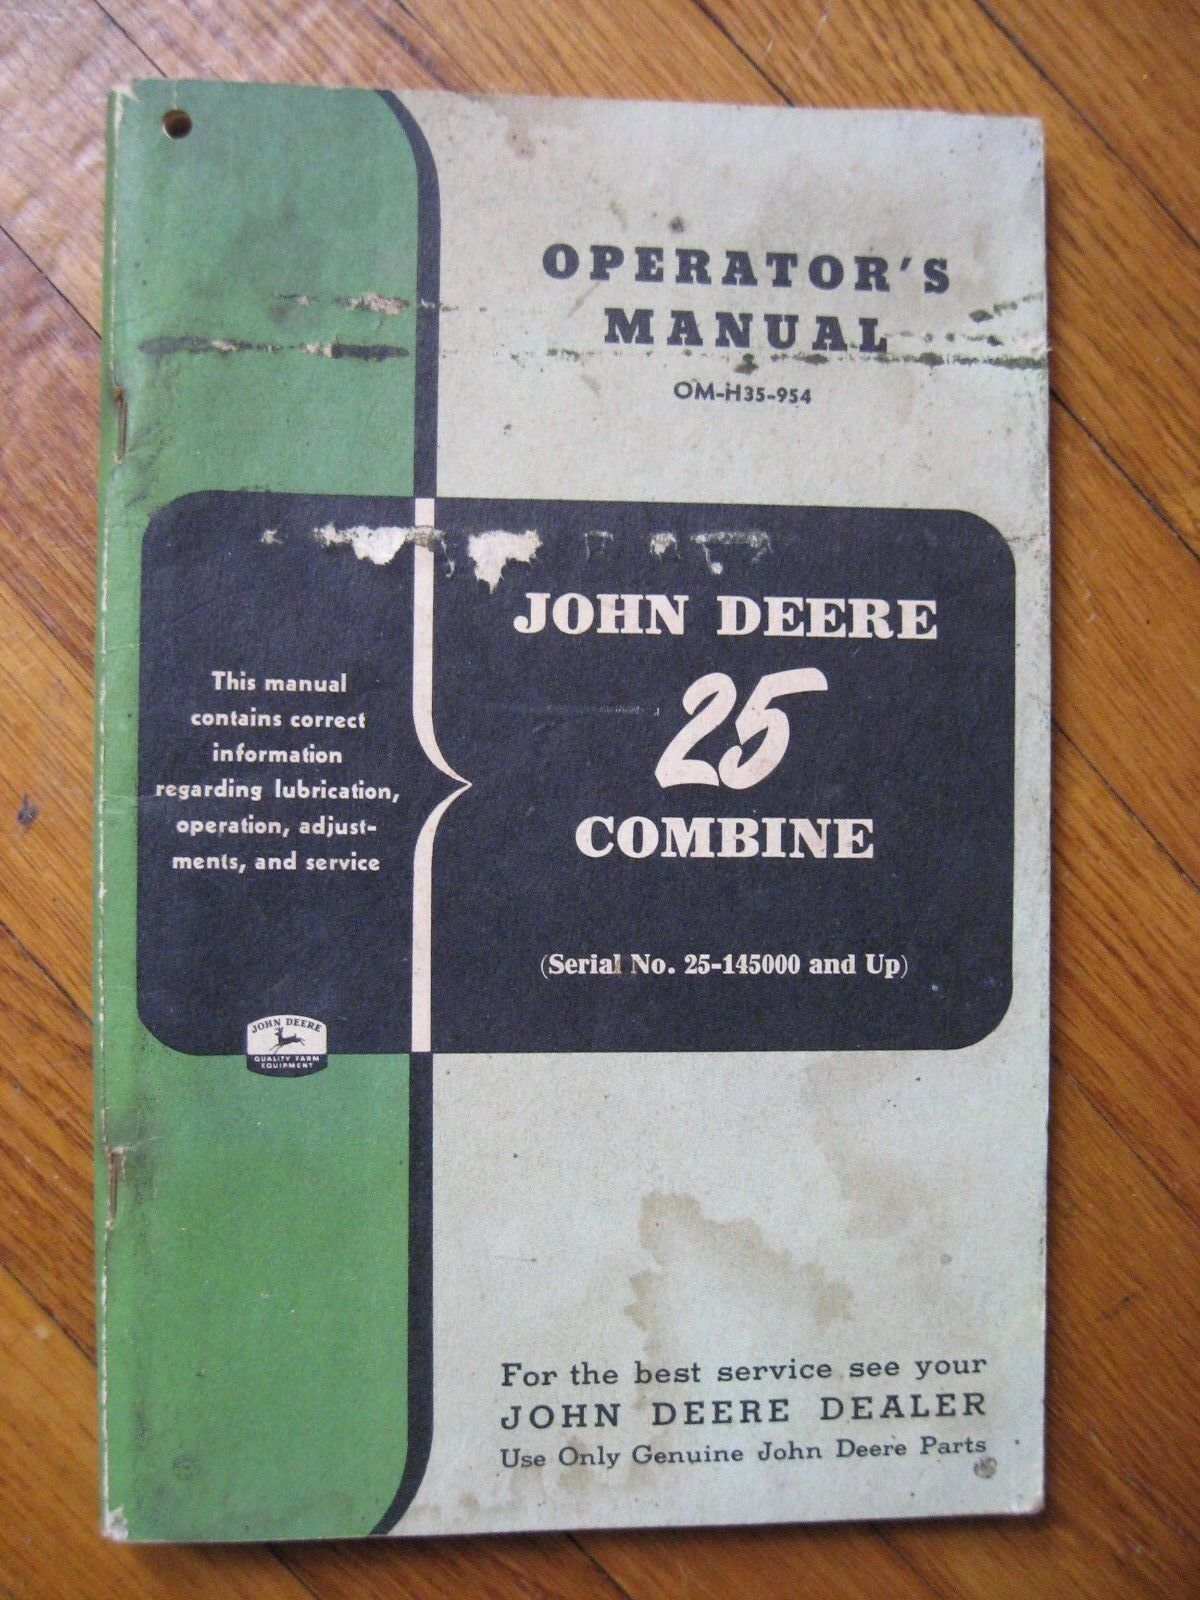 John Deere 25 Combine operators manual ORIGINAL 1 of 2Only 1 available ...